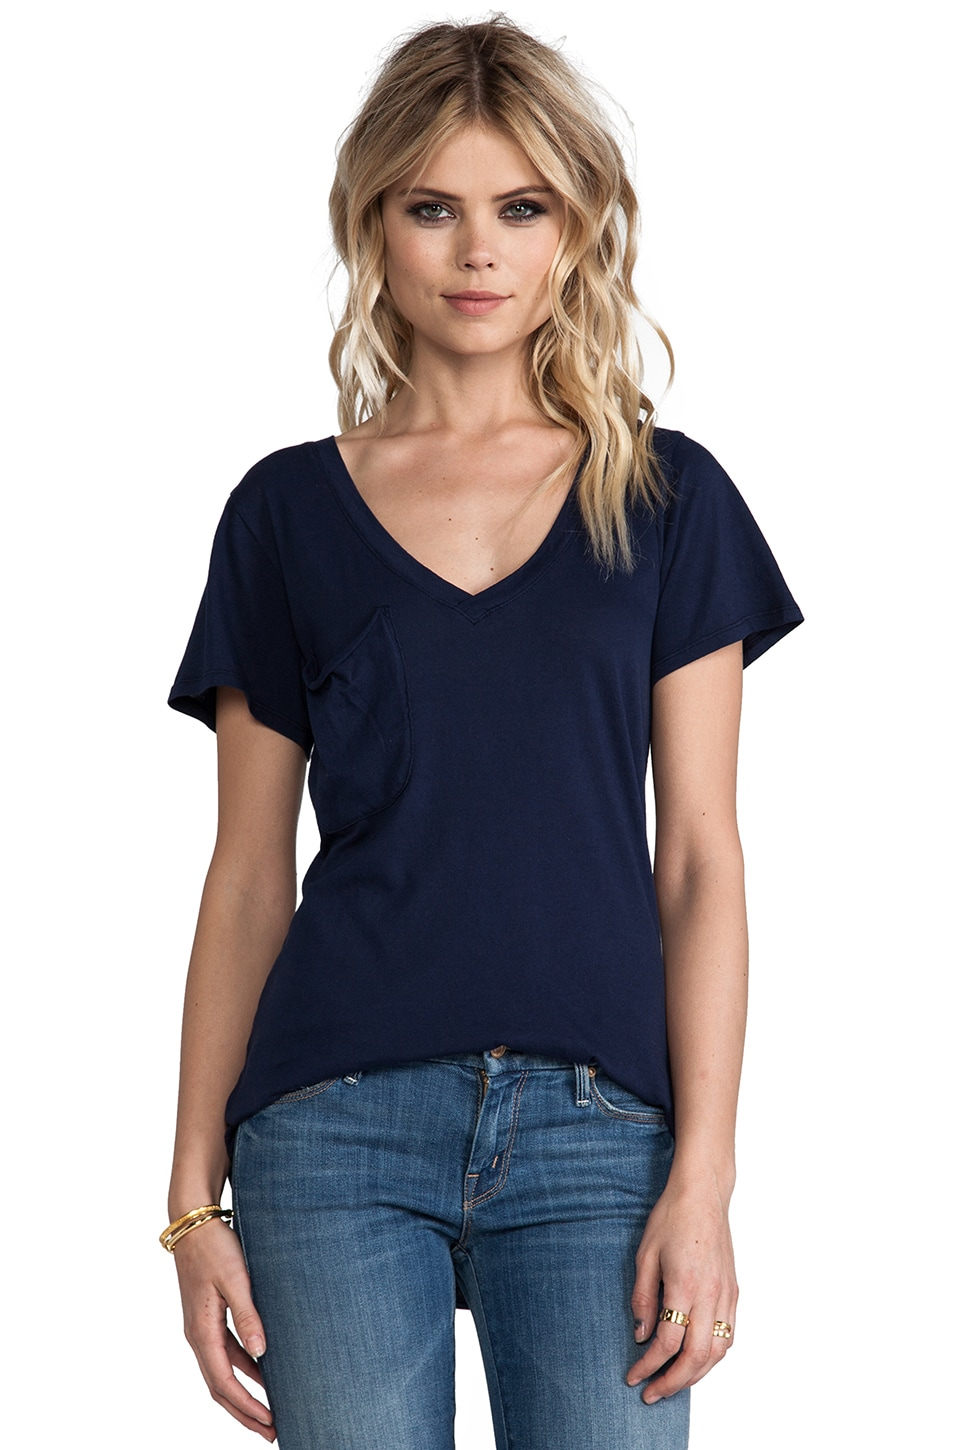 Bobi Light Weight Jersey V Neck Pocket Tee in Marina